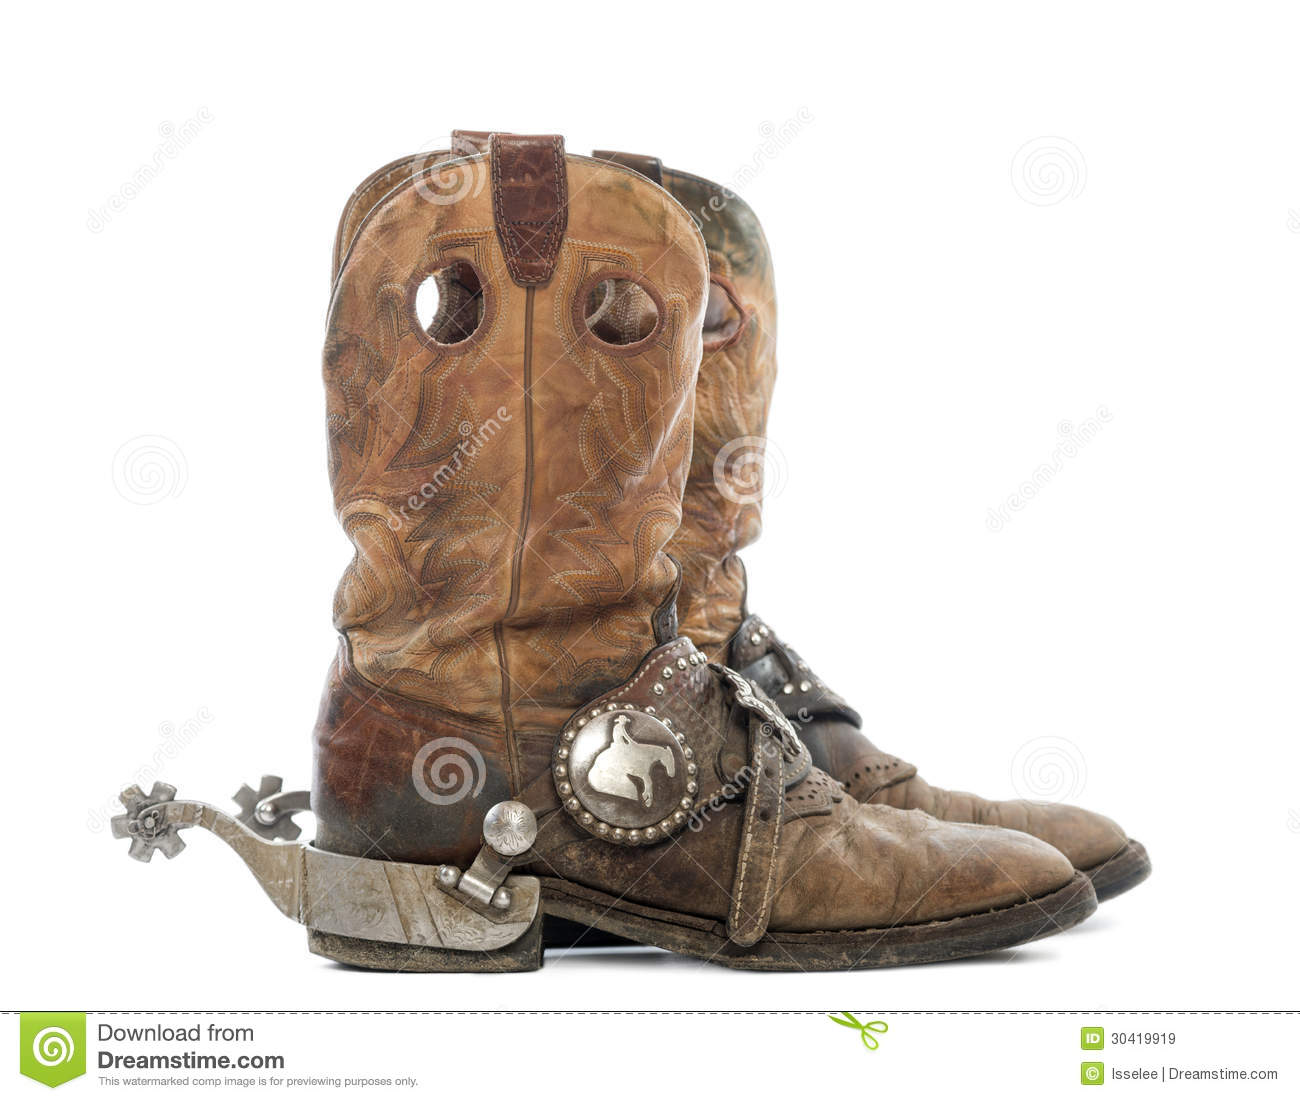 pics for gt cowboy boots with spurs for